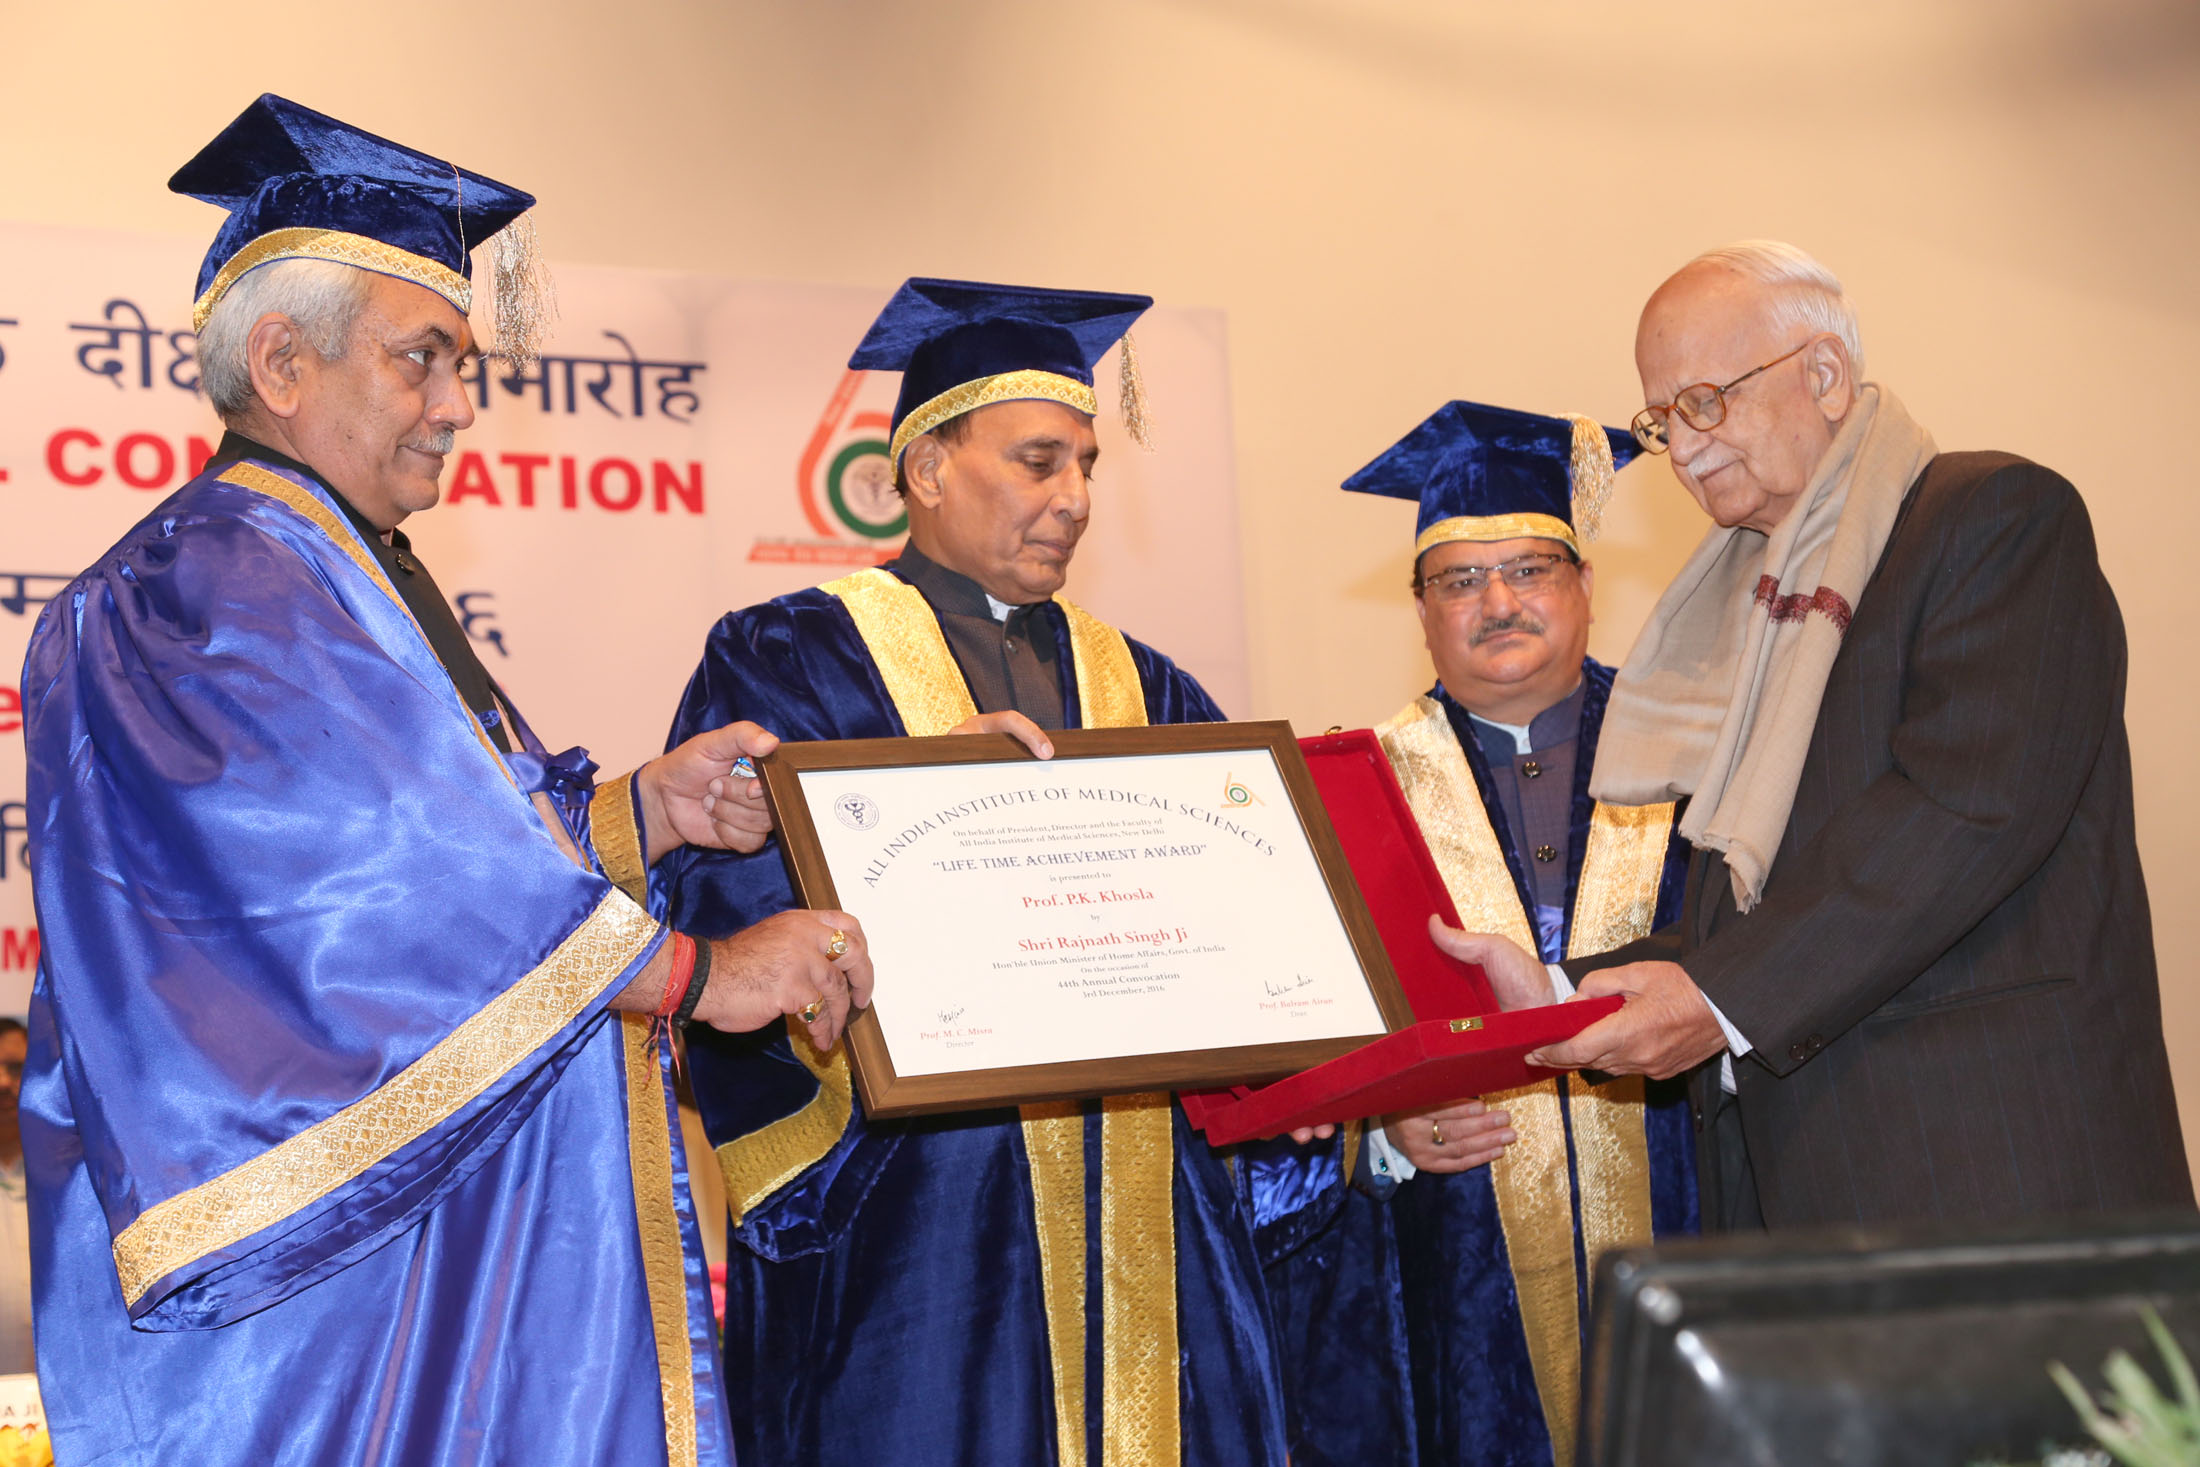 The Union Home Minister, Shri Rajnath Singh presenting the Lifetime Achievement Award to Prof. P.K. Khosla during the 44th Annual Convocation of the AIIMS, in New Delhi on December 03, 2016.